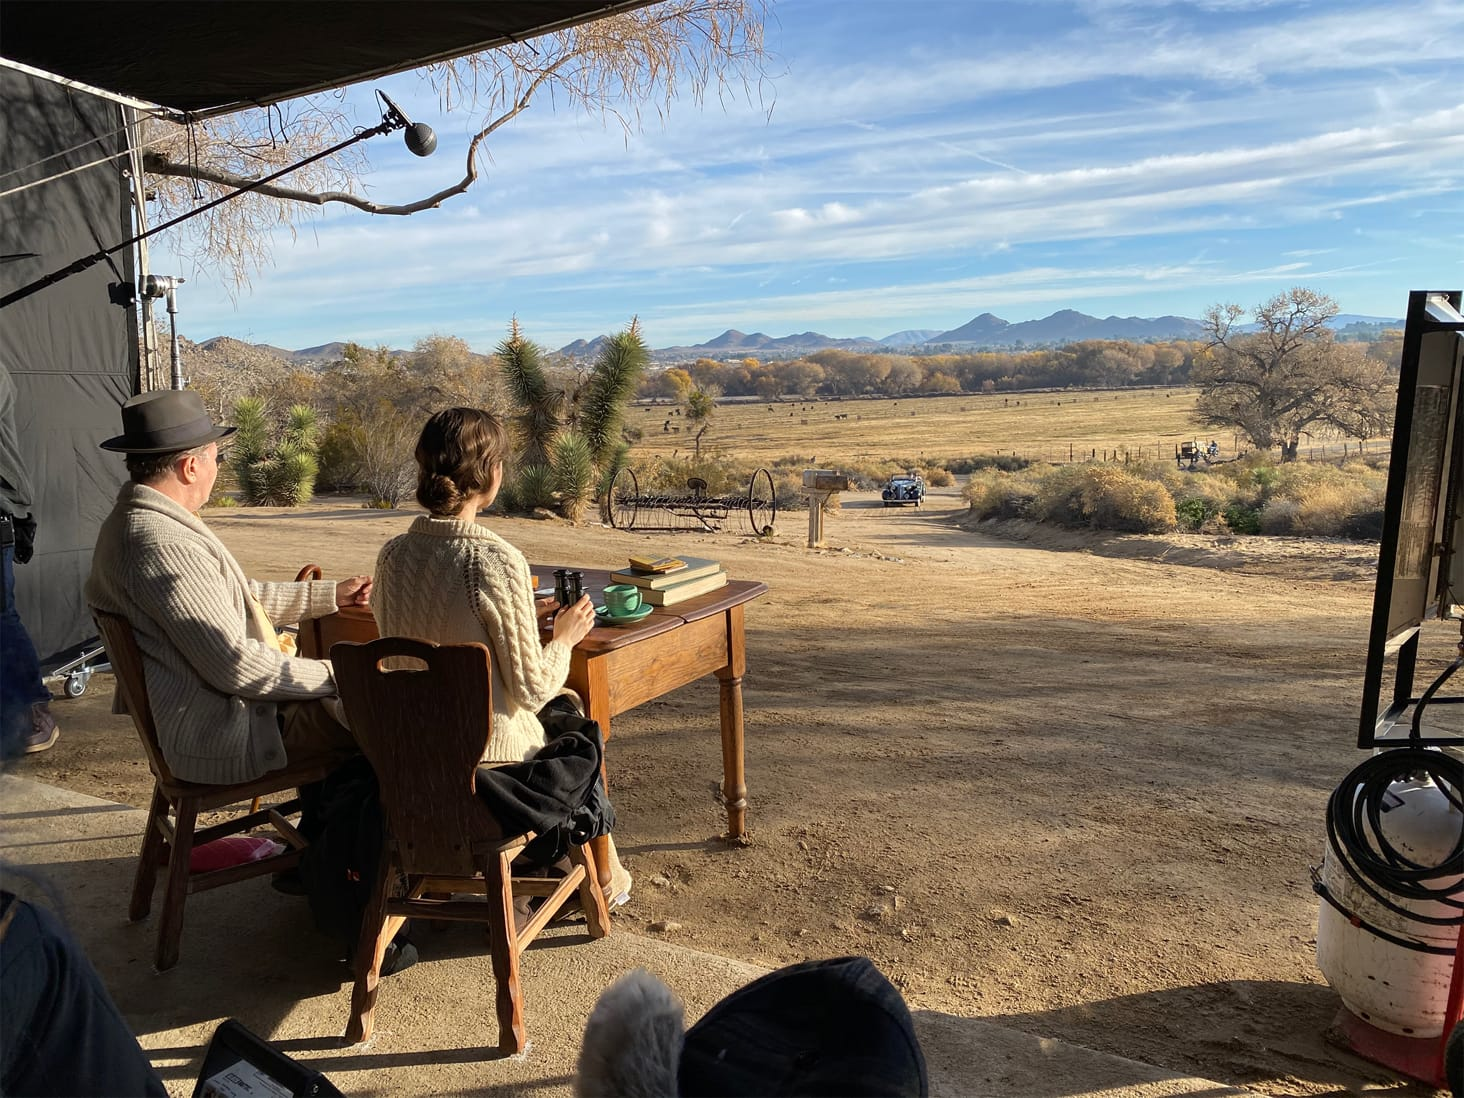 Oldman and Lily Collins in character on the set of Mank. The pair are seated at a table, gazing out at the backdrop that serves as the California desert. The sky is a bright blue and the expanse in front of them is a dusty yellow.